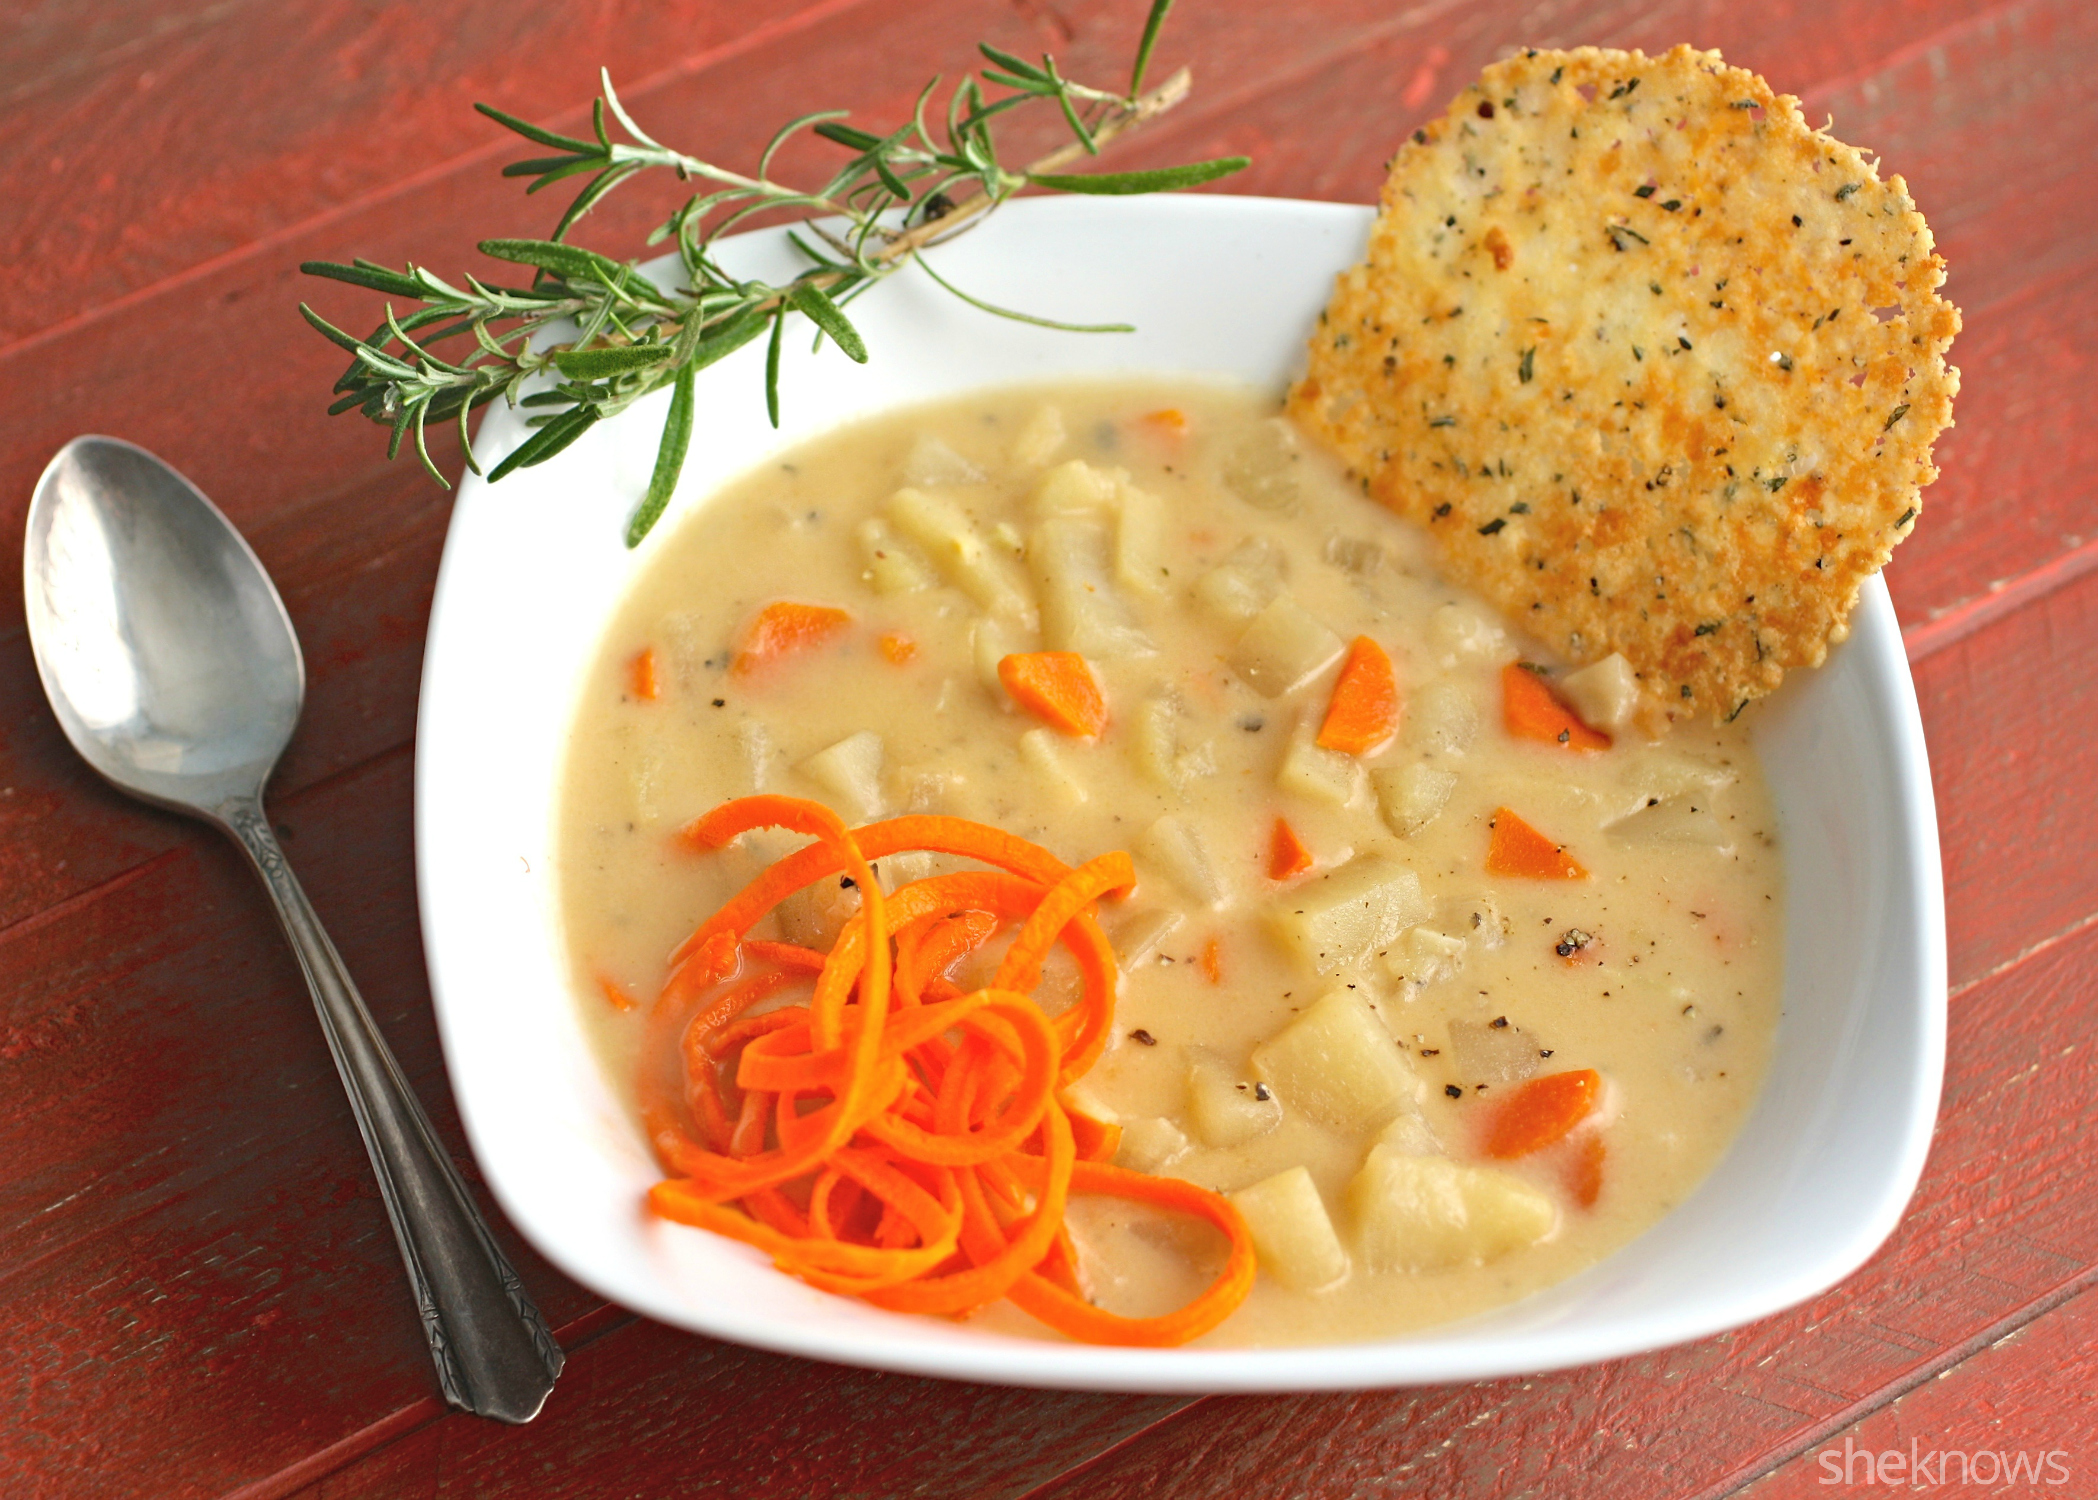 Simmer down for dinner with carrot, parsnip, and potato chowder with Parmesan crisps